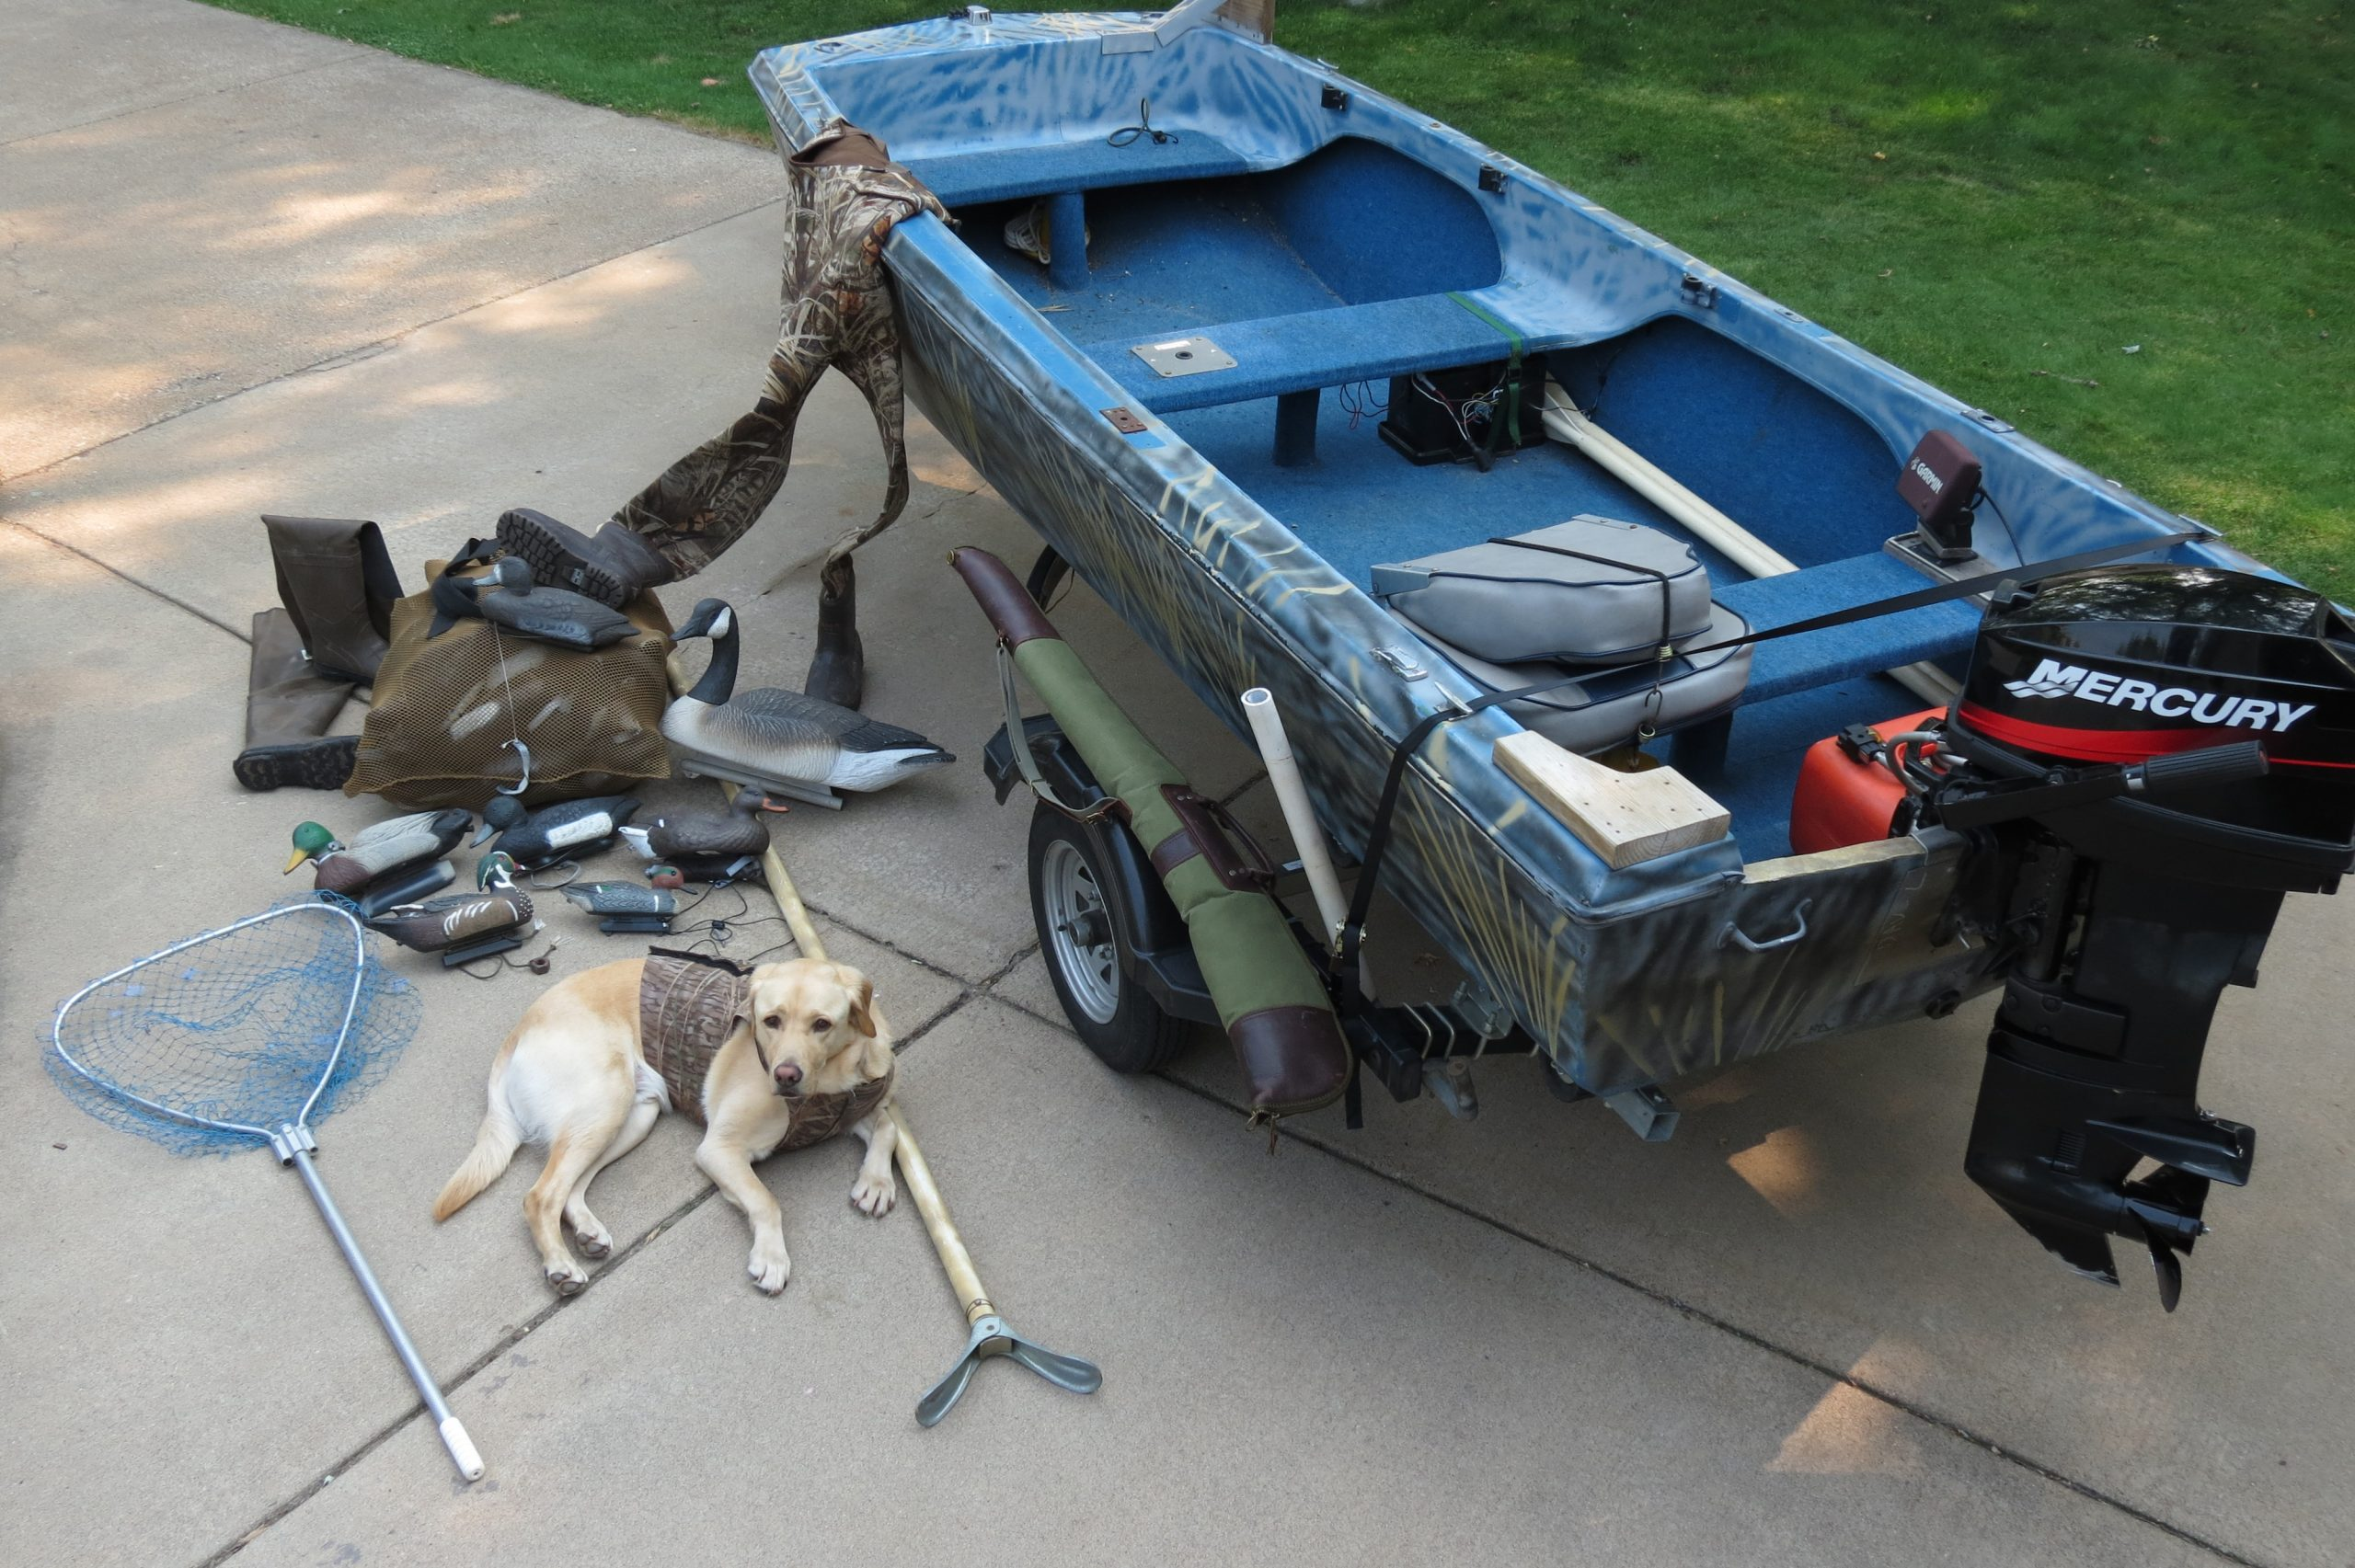 Photo of a duck hunting boat with a dog and hunting gear